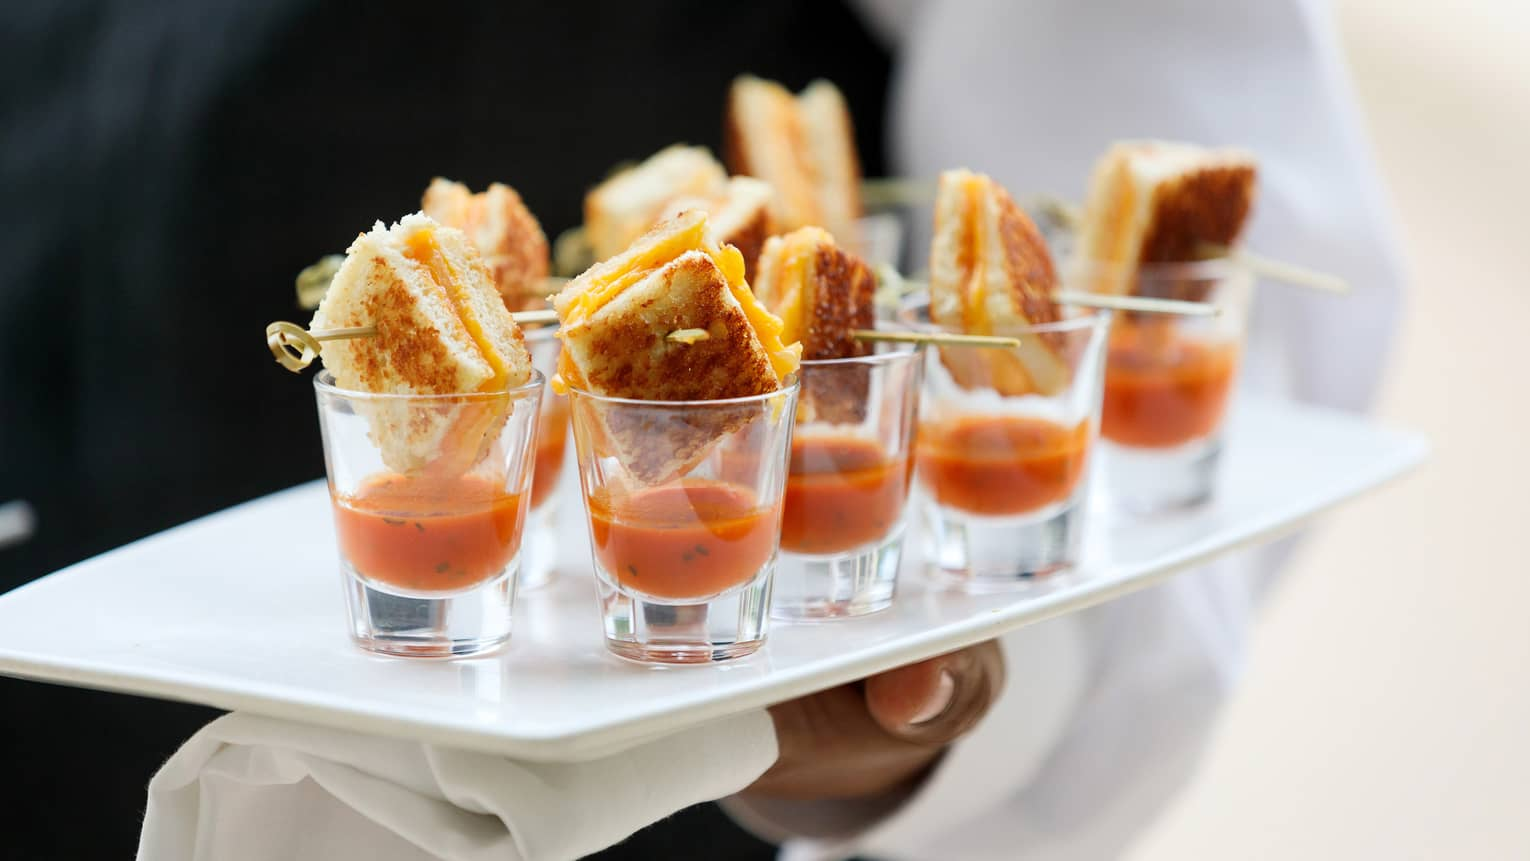 Close up of hotel staff holding platter with tomato soup and small grilled cheese sandwiches in shot glasses